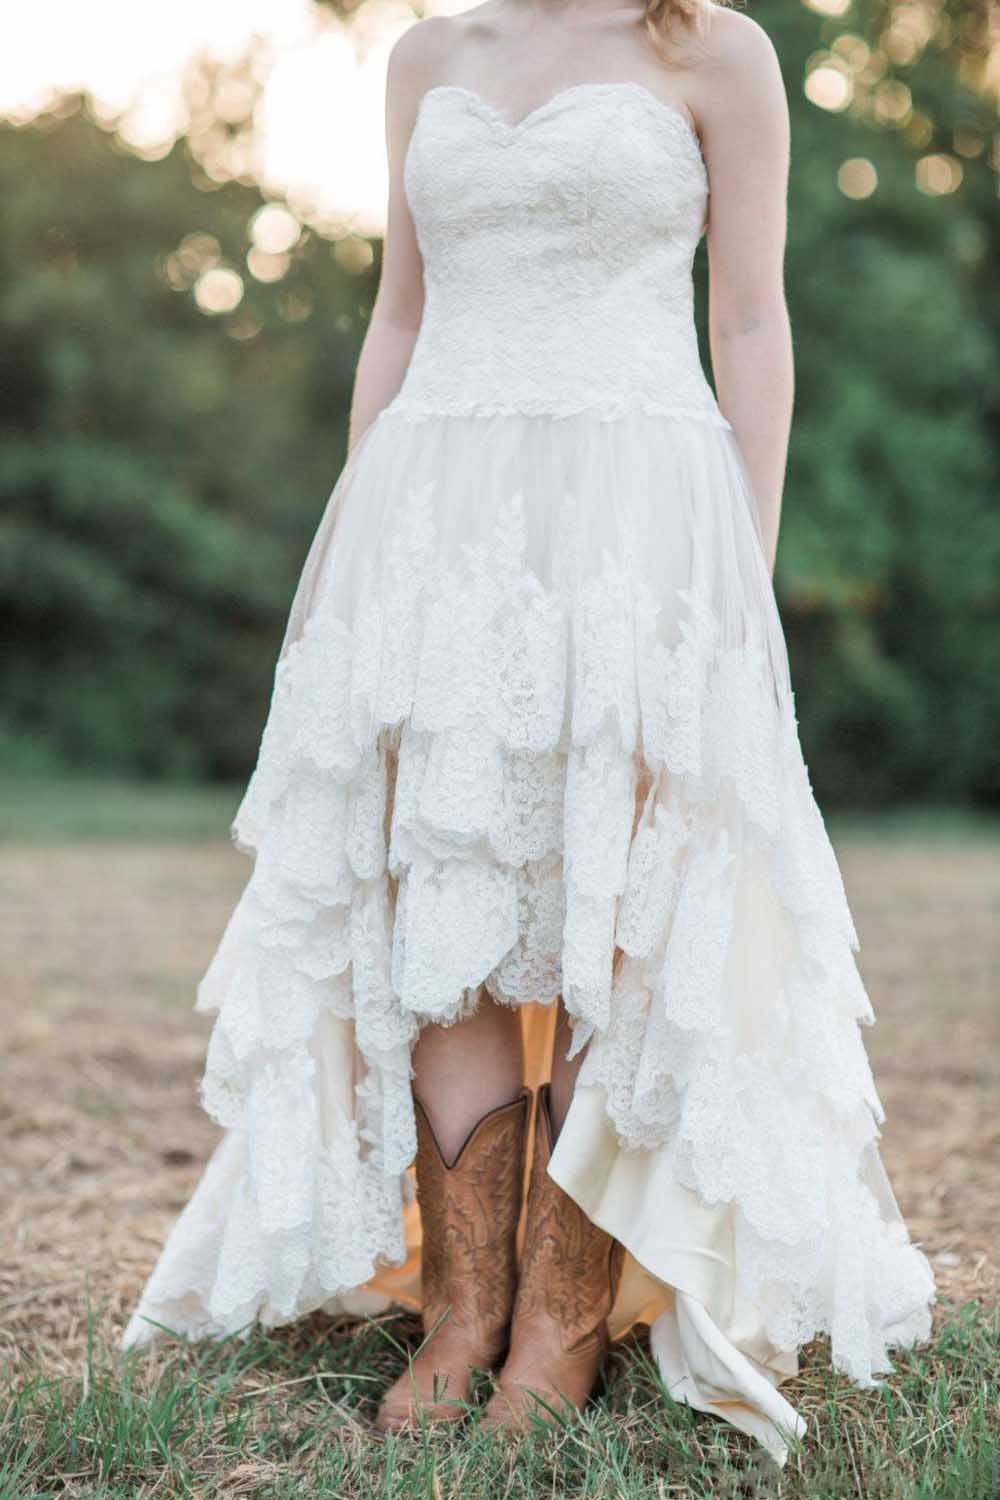 2020 Country Western High Low Wedding Dresses Lace Sweetheart Lace Up Tiered Custom Made A Line Plus Size Bridal Gowns